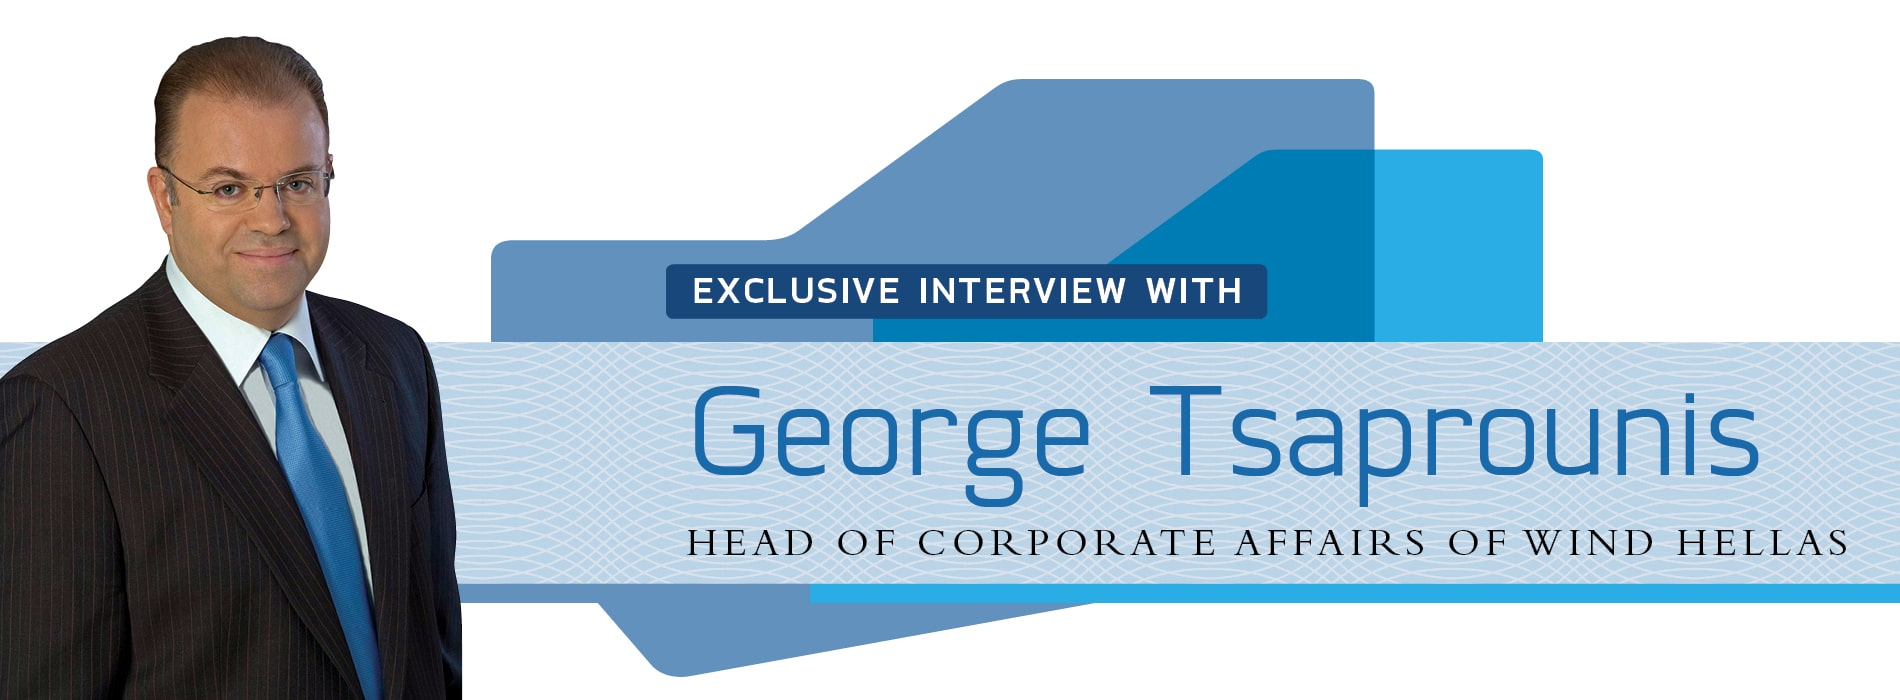 Interview on ICT with George Tsaprounis of Greece's WIND Hellas